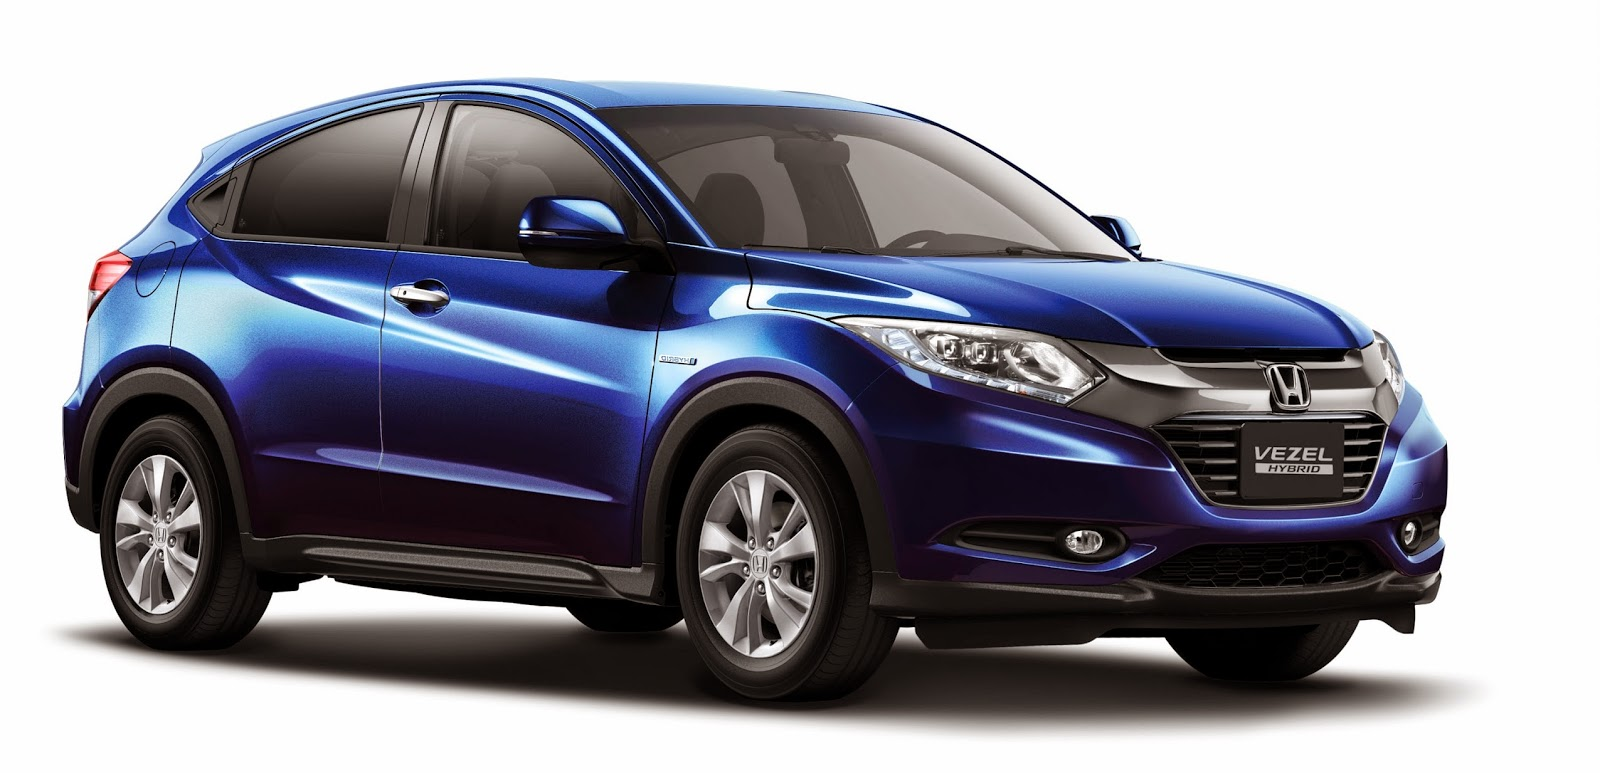 Honda Vezel 1.5 L SPORT HYBRID i-DCD 2015 | Car Reviews | New Car Pictures for 2018, 2019